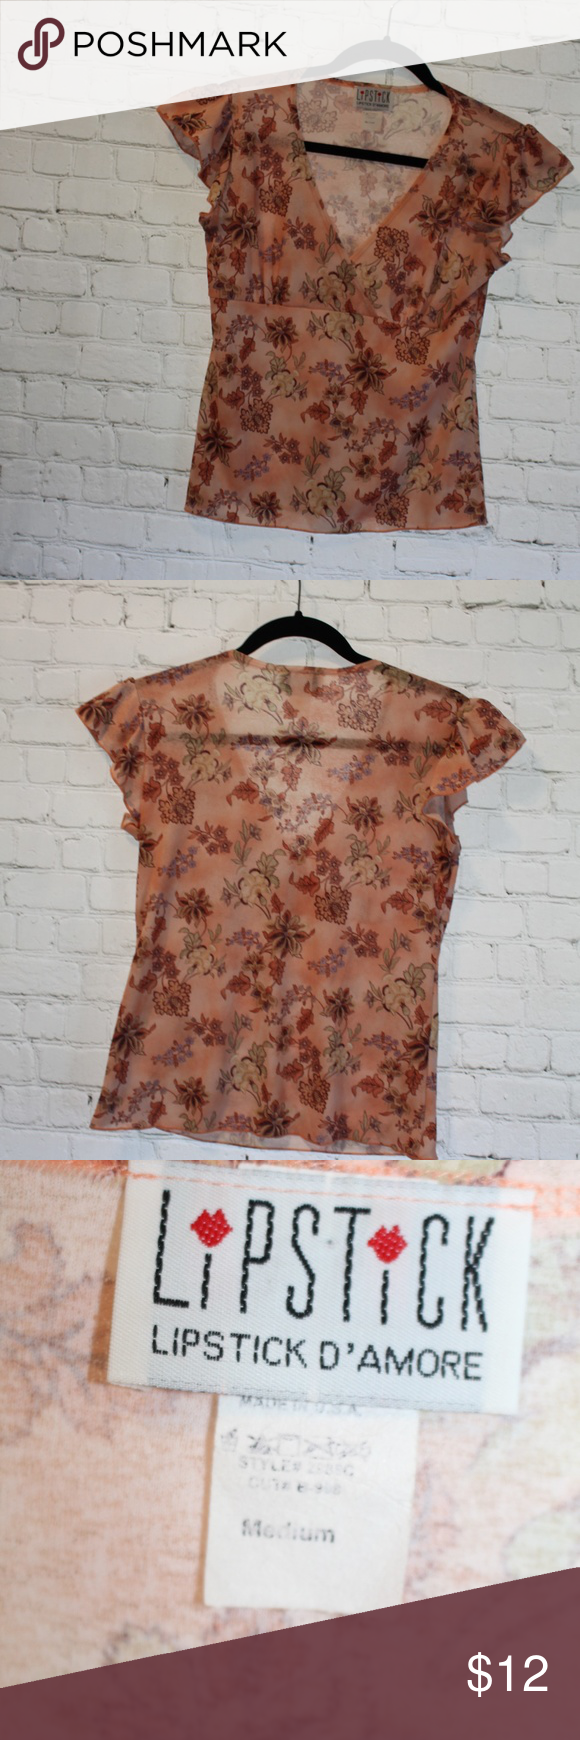 LIPSTICK BOUTIQUE V-Neck Top Size M Lipstick D'Amore Lipstick Boutique  Peachy color with rustic touches  Floral pattern V-neck Ruffled cap sleeves  Gently worn with no flaws Lipstick Boutique Tops Blouses